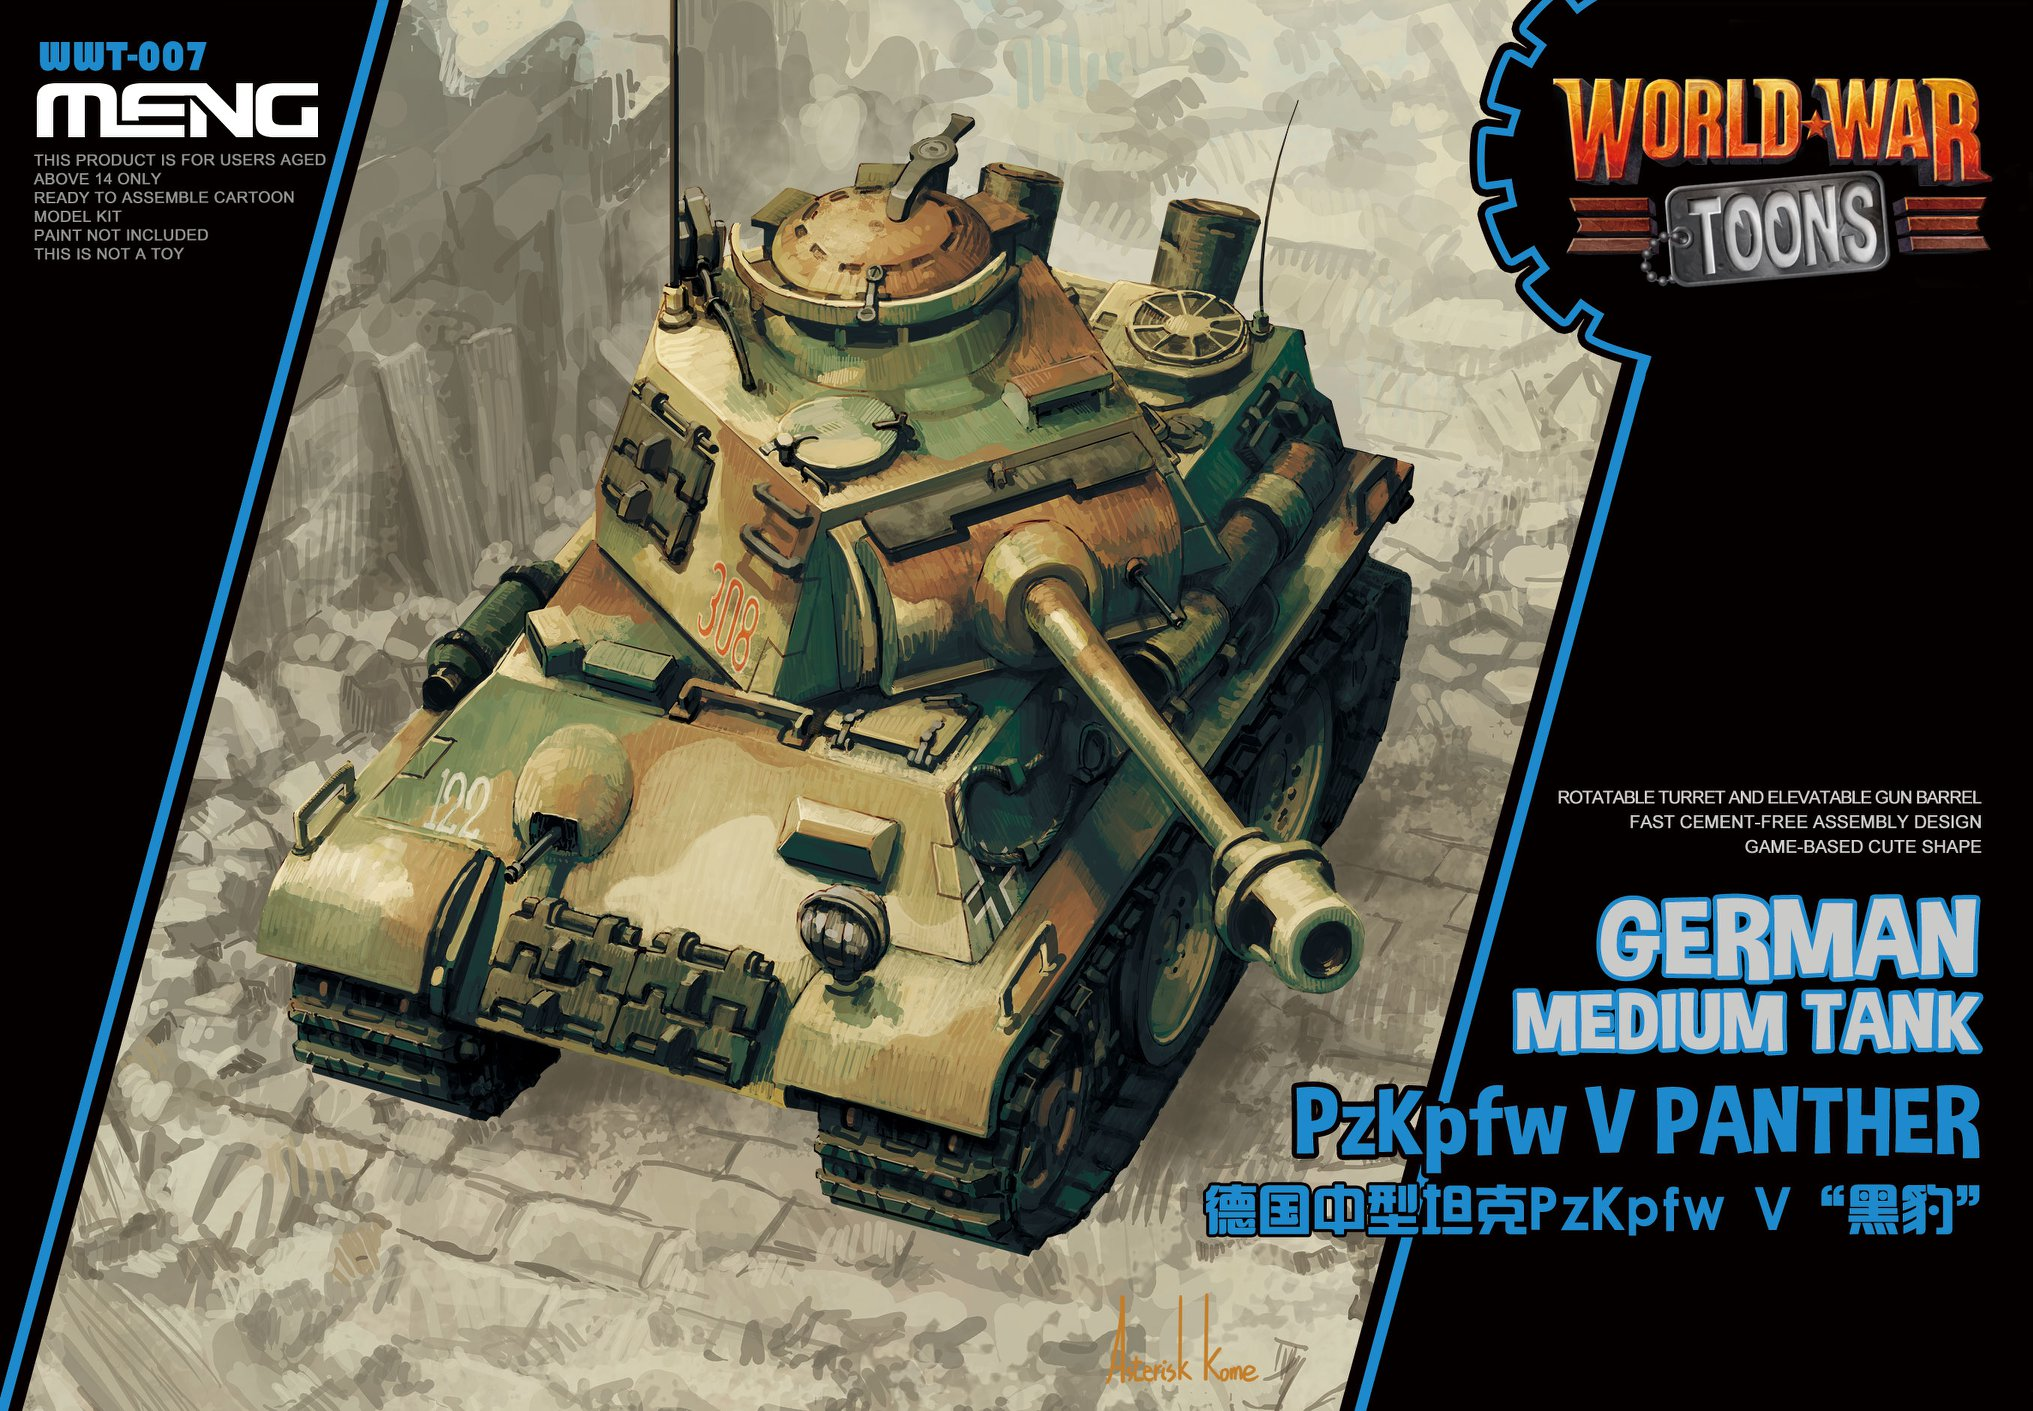 German Medium Tank PzKpfw V Panther (Cartoon model)